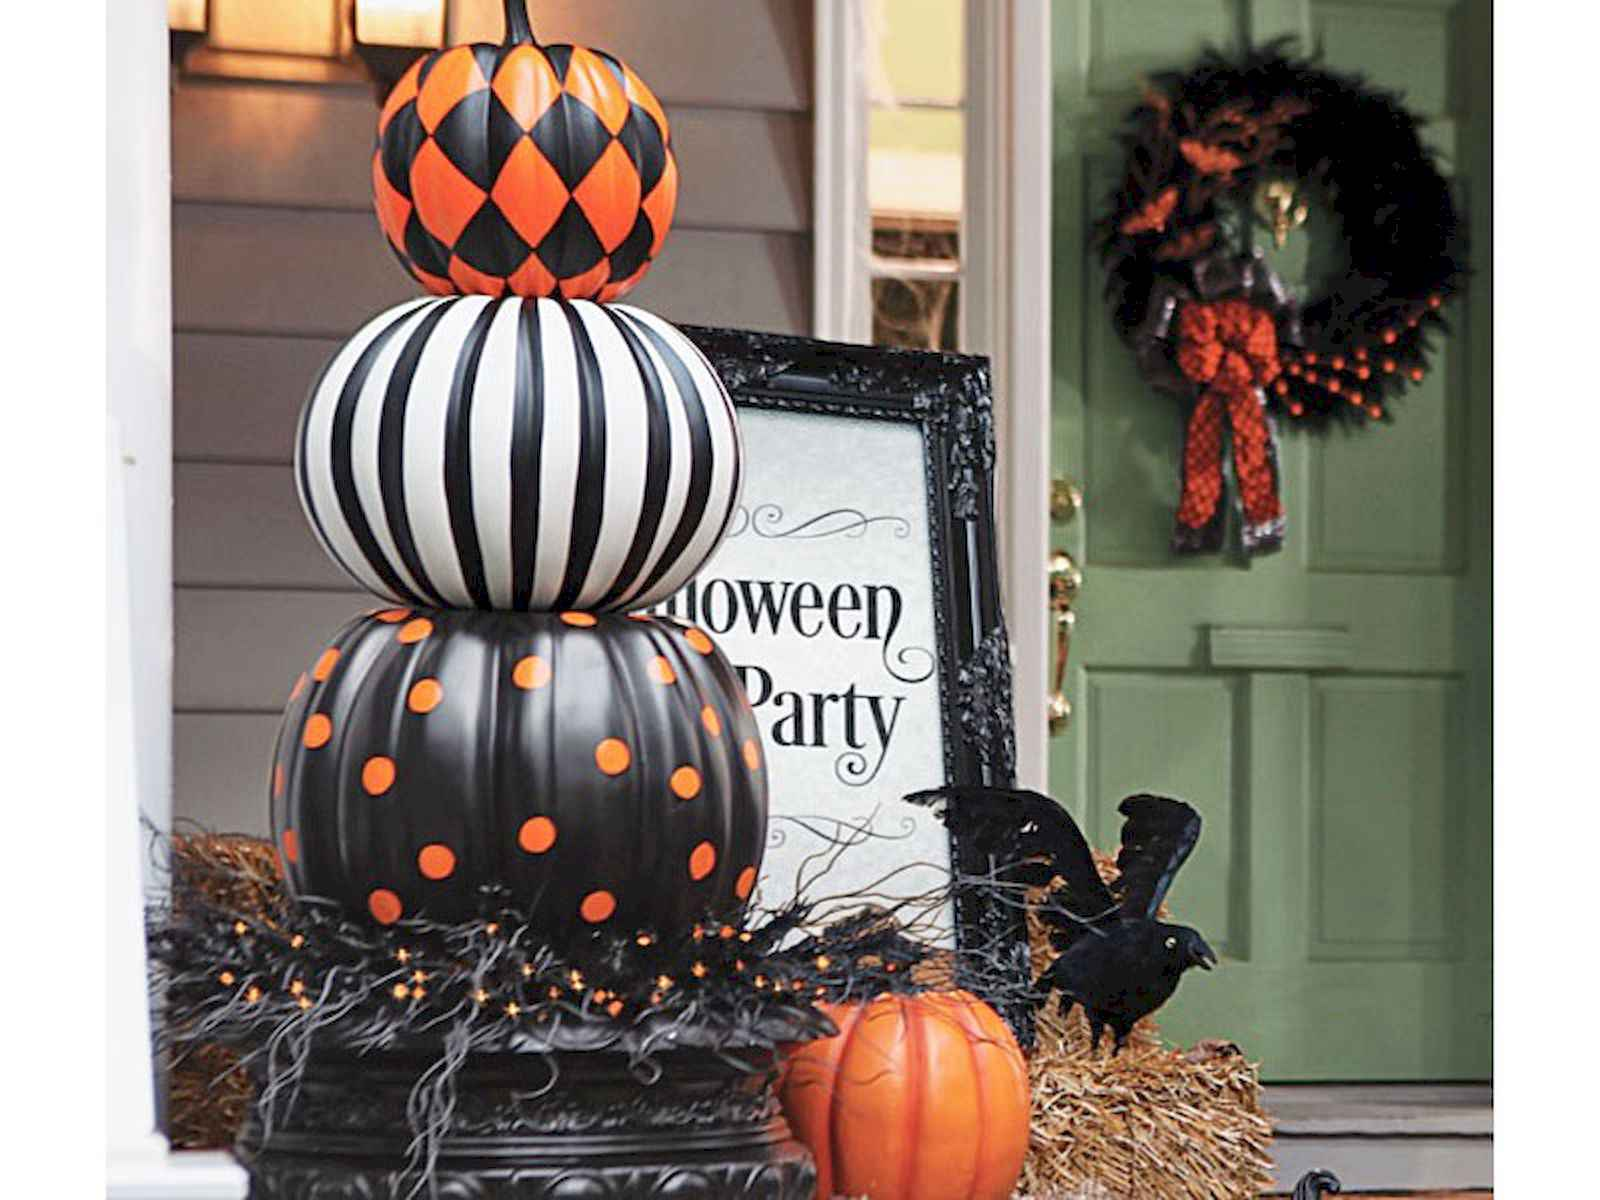 Halloween Home Design Ideas: 60 DIY Outdoor Halloween Decorations Ideas And Makeover